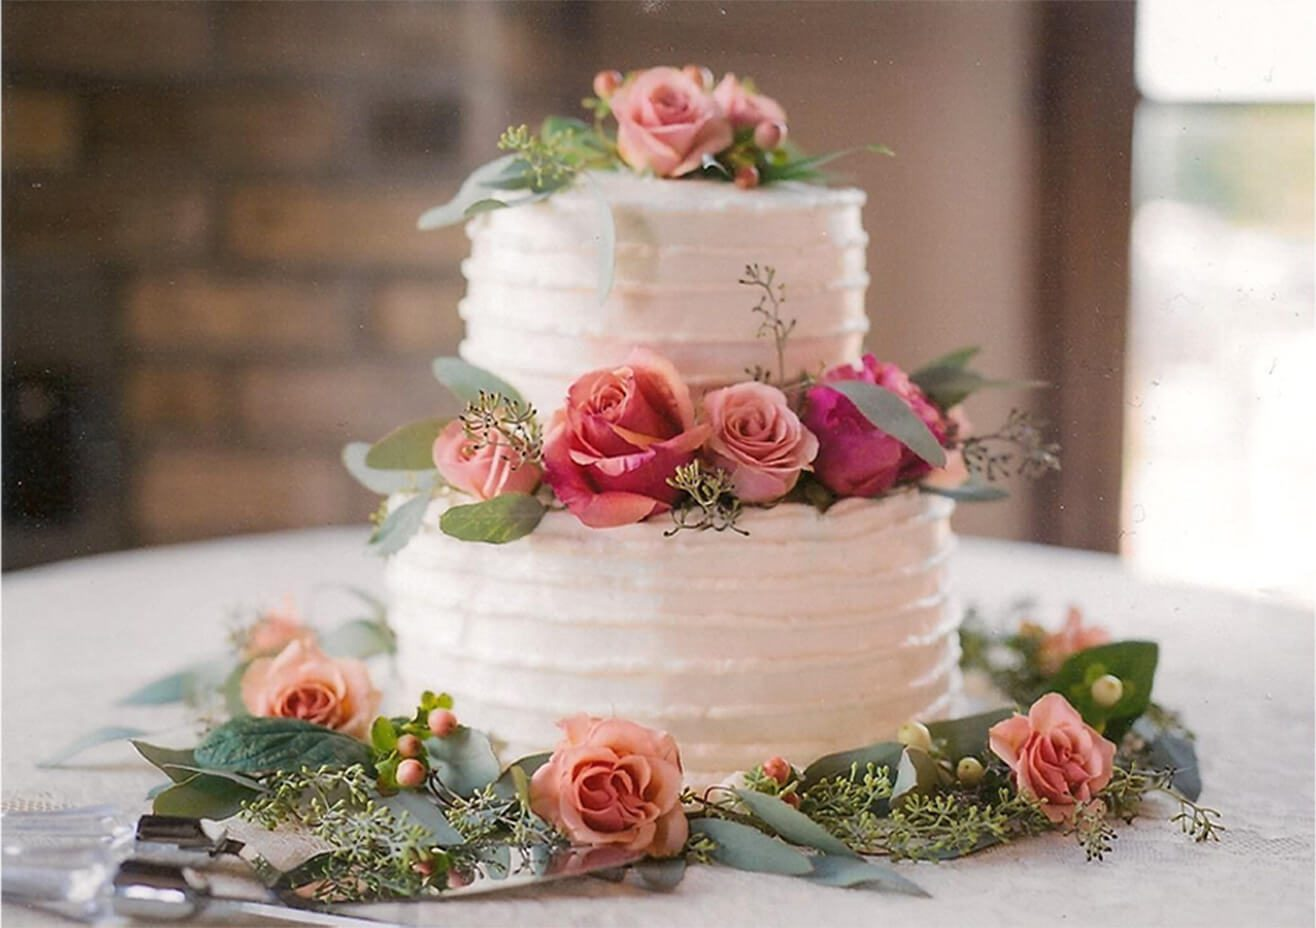 2 Tier Wedding Cake with Pink Roses